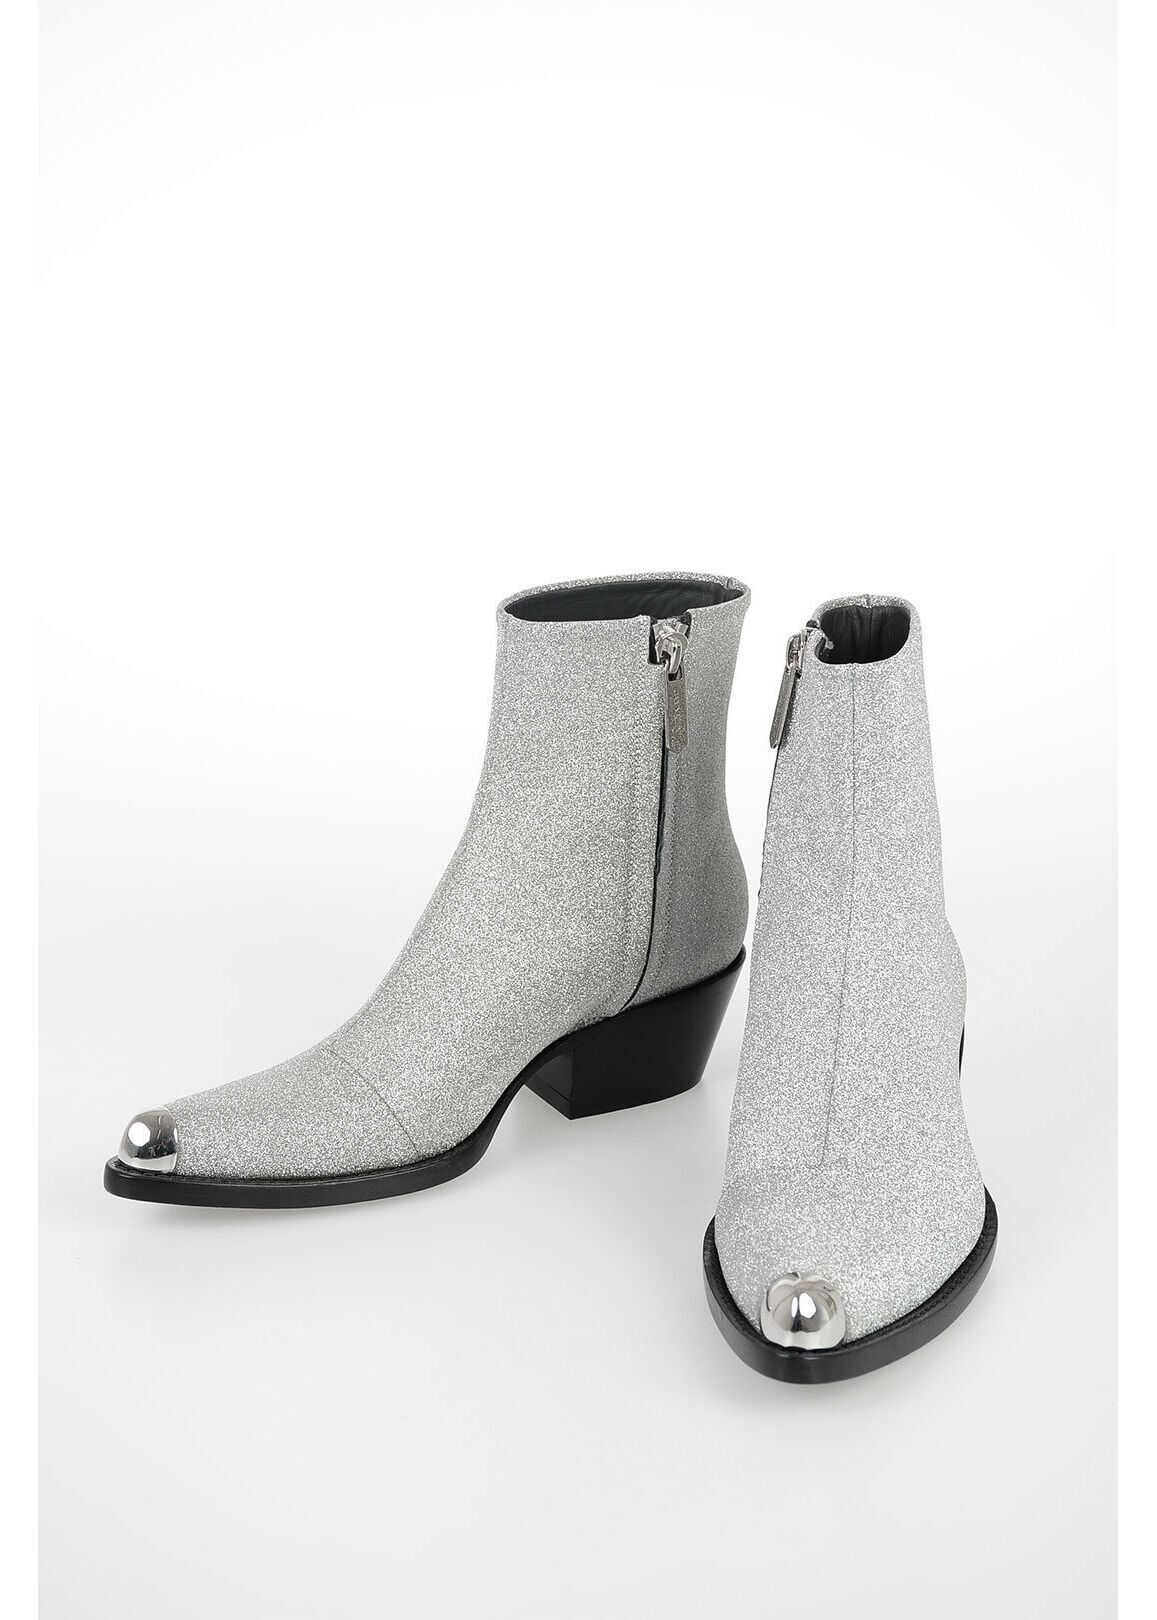 Calvin Klein 6cm Glittered Ankle Boots SILVER